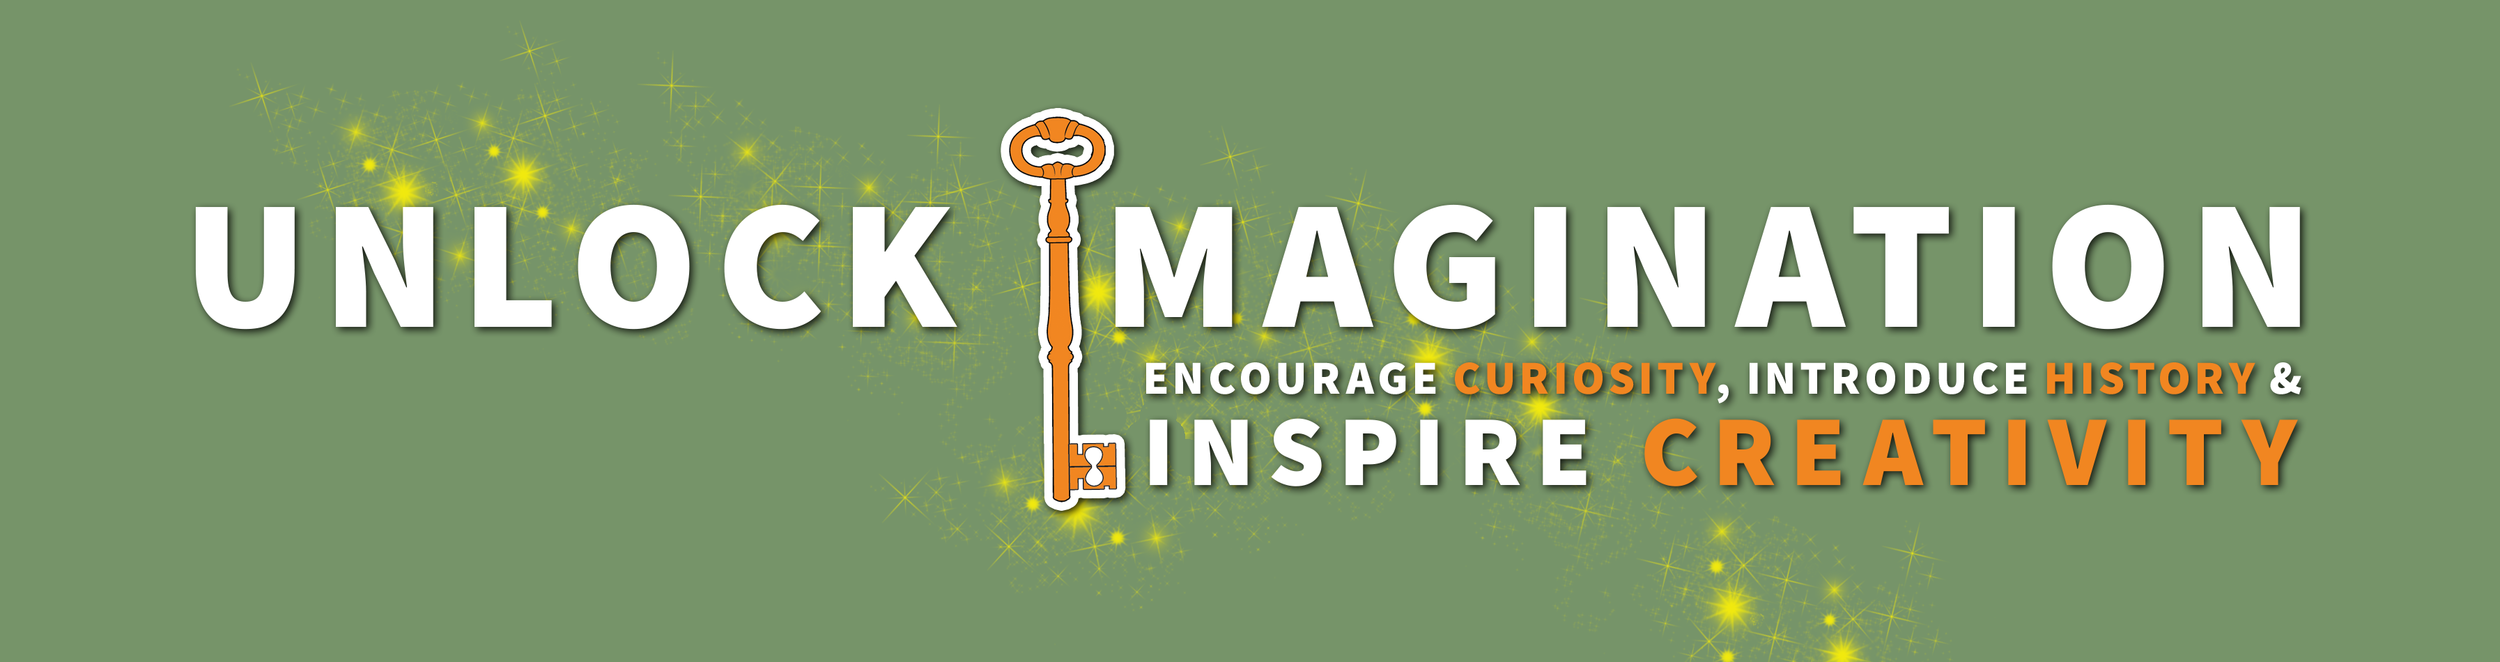 UNLOCK IMAGINATION, encourage curiosity, introduce history and Inspire creativity